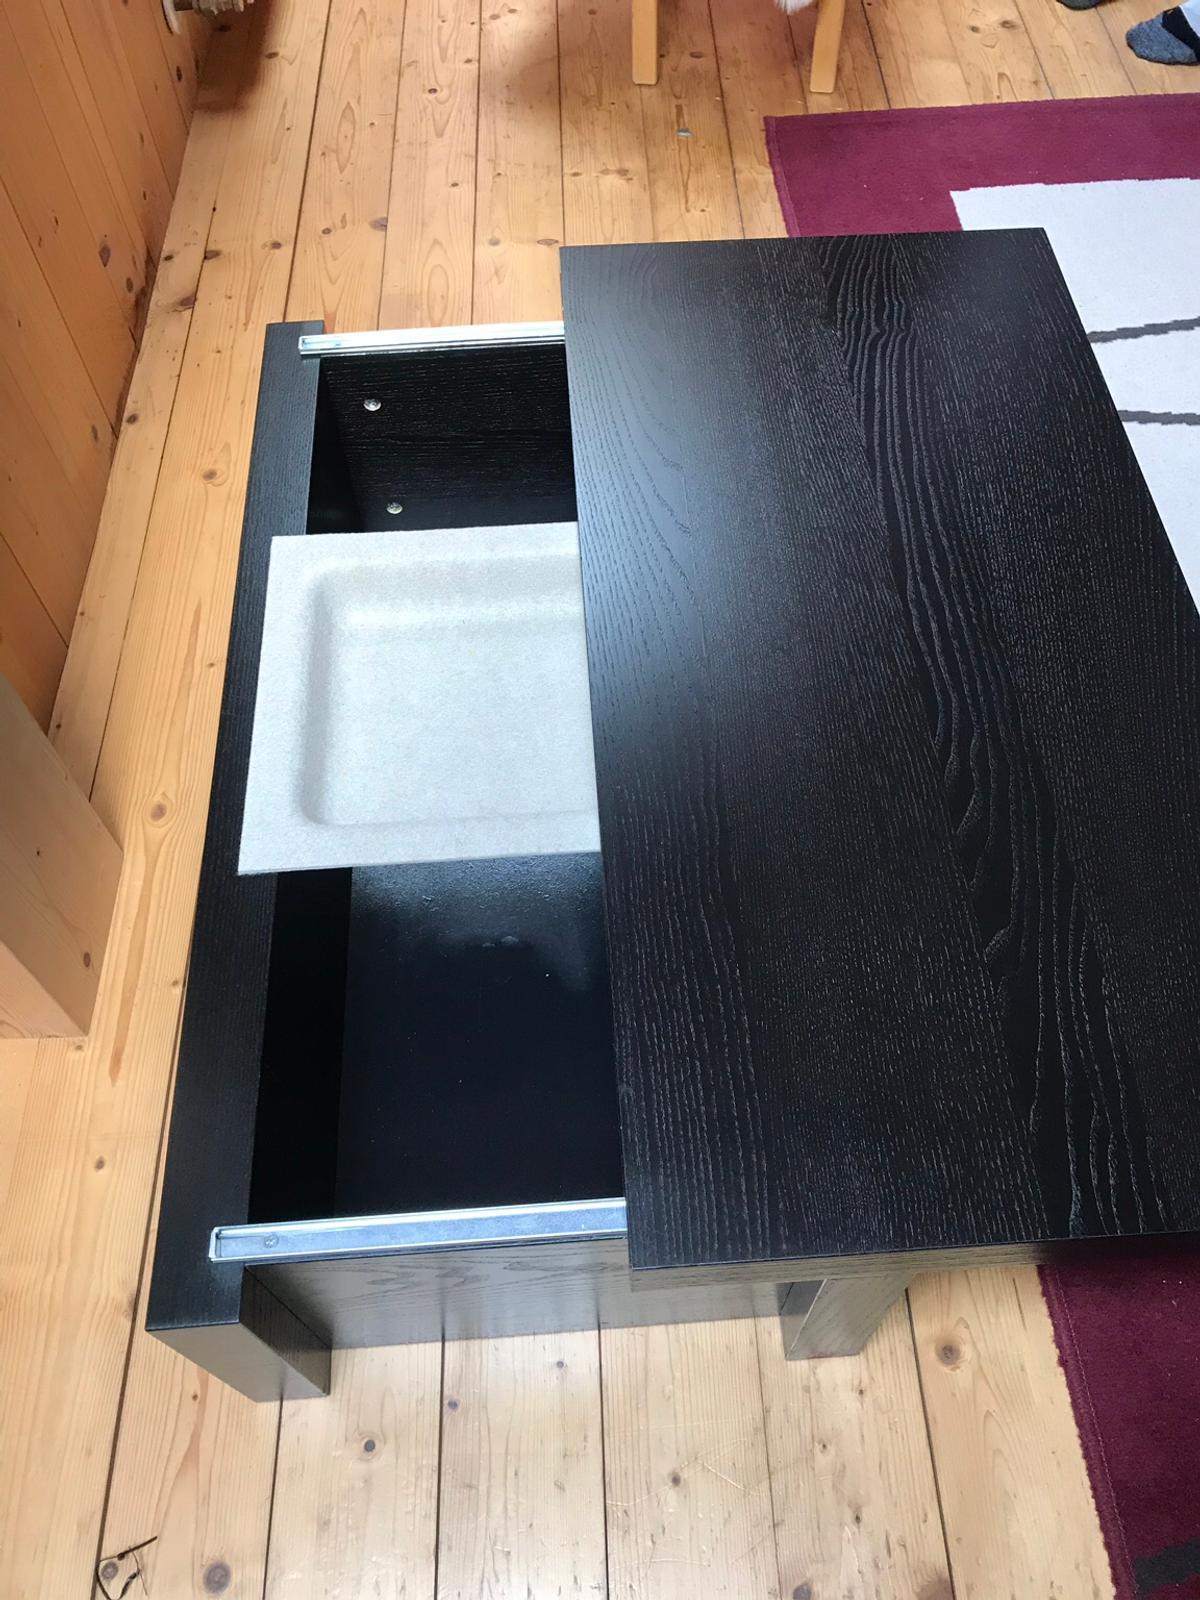 Bank Schwarz Ikea Tv Bank Schwarz In 6881 Mellau For 15 00 For Sale Shpock